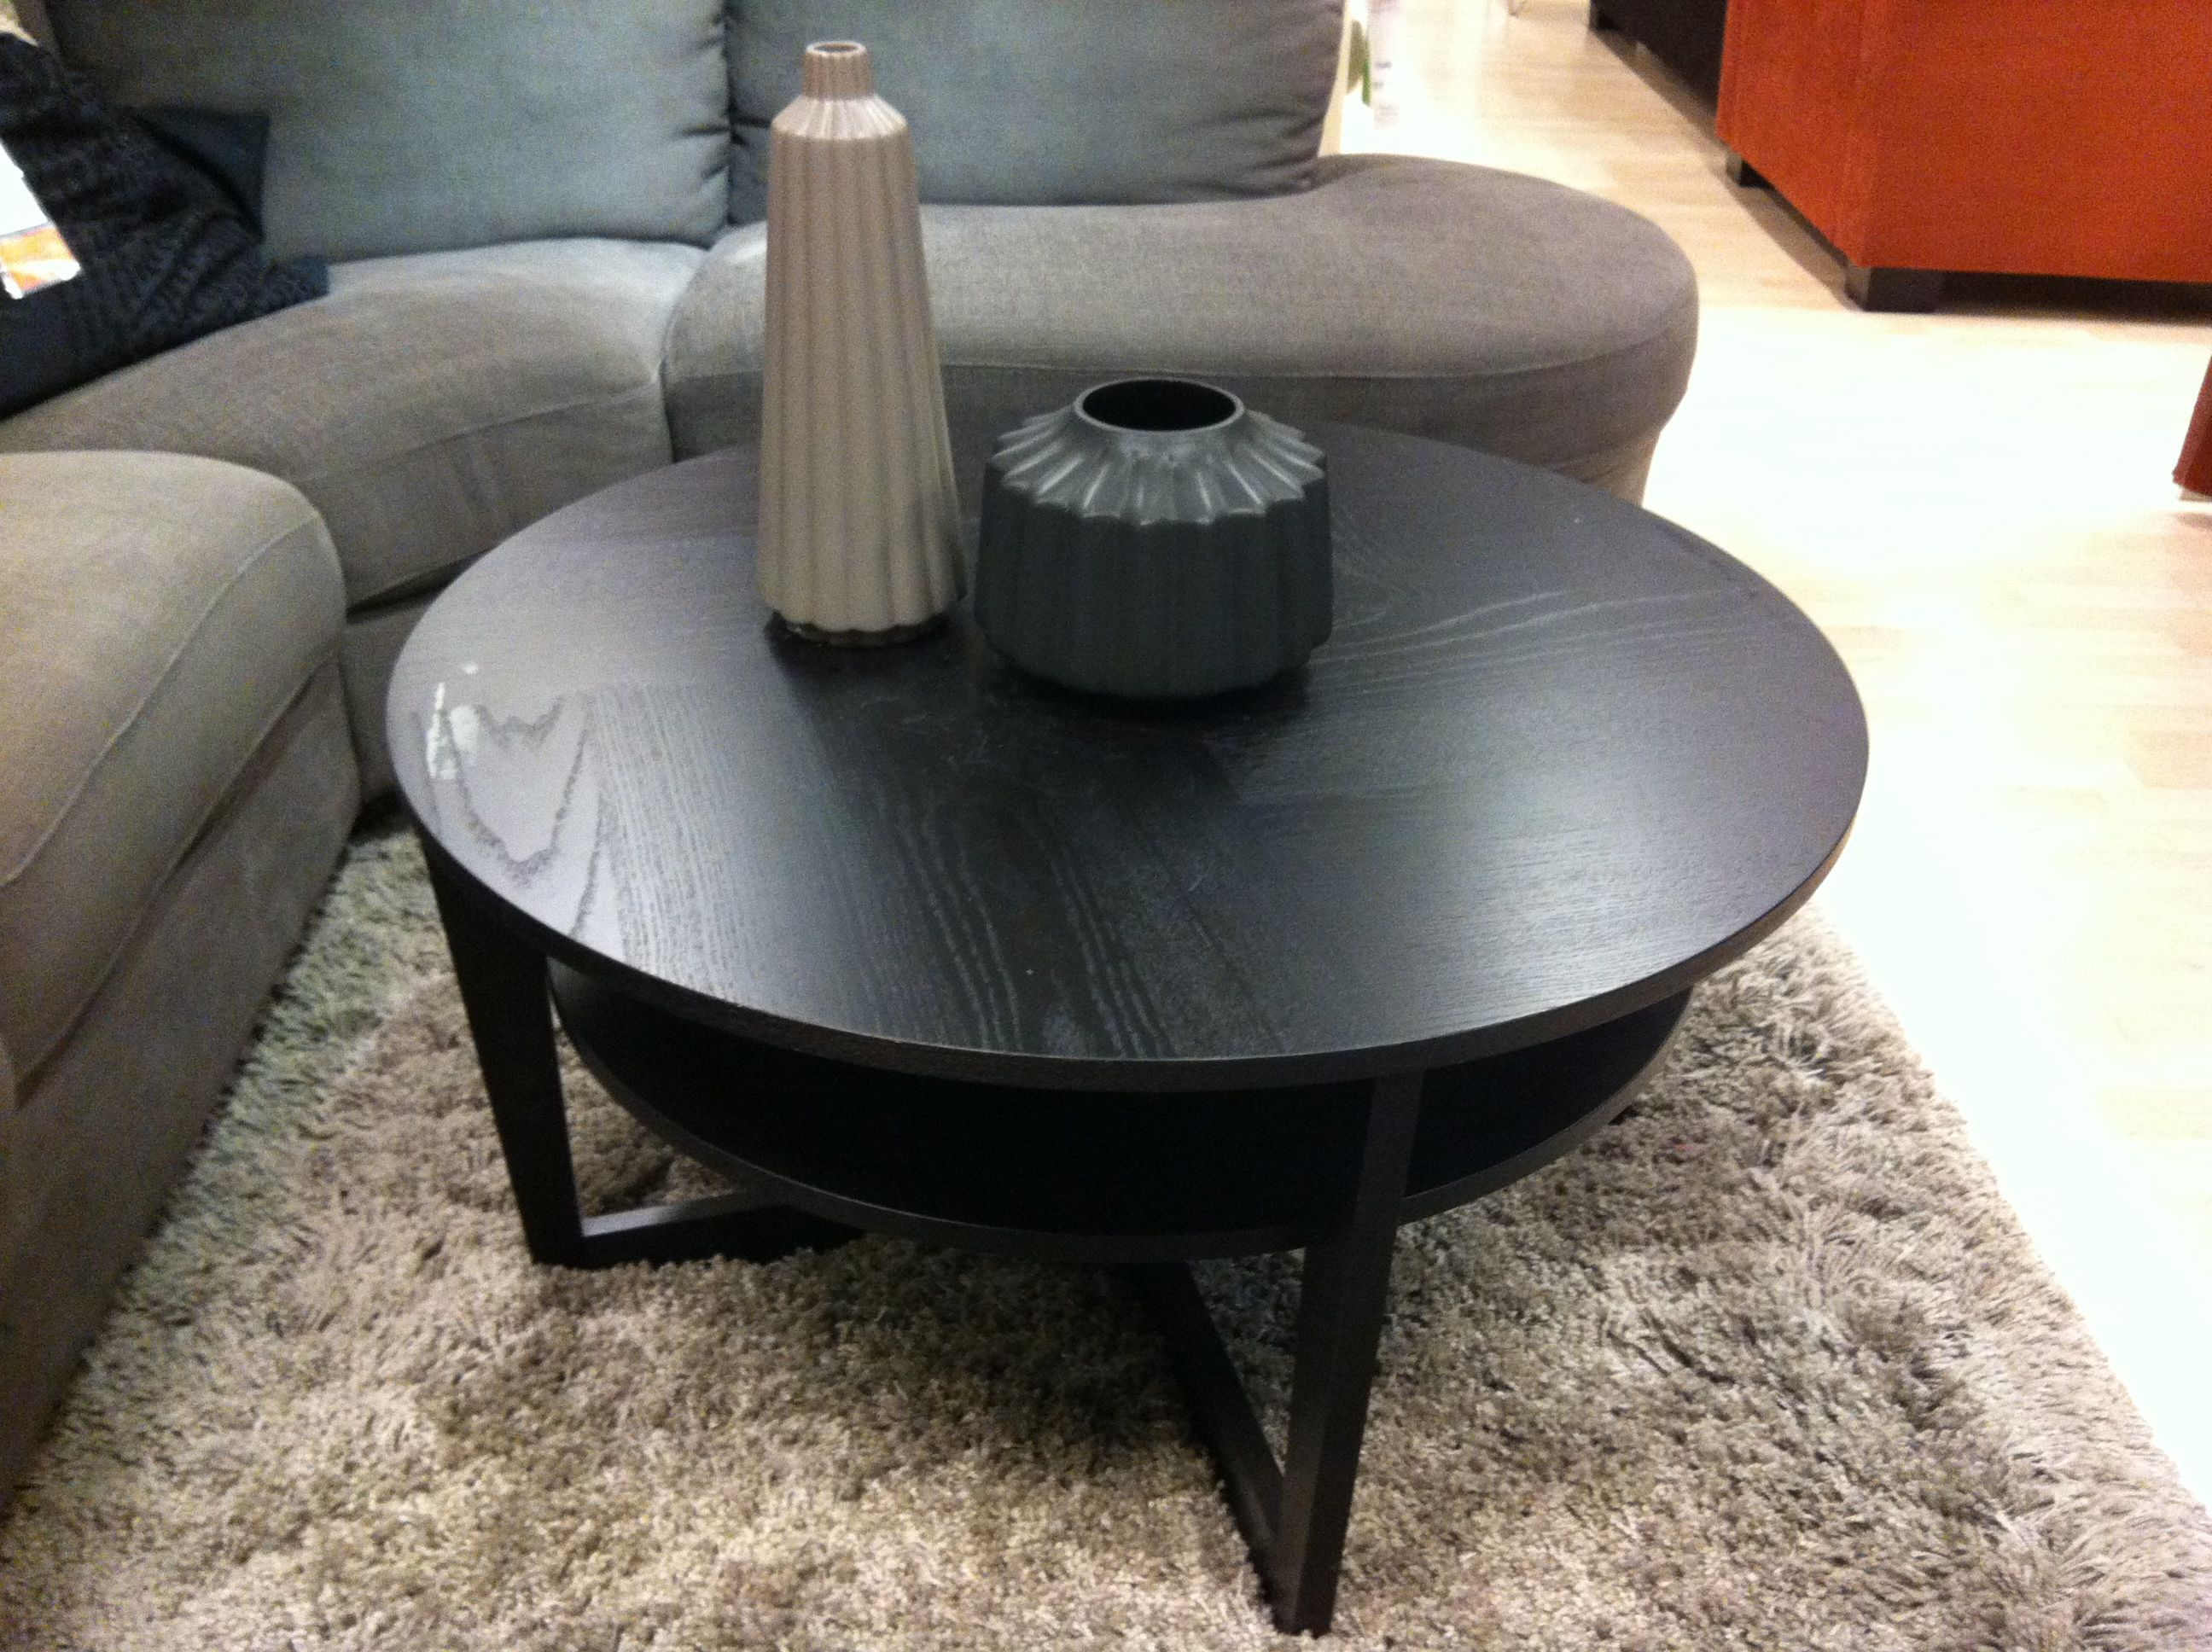 IKEA Round Wood Coffee Table